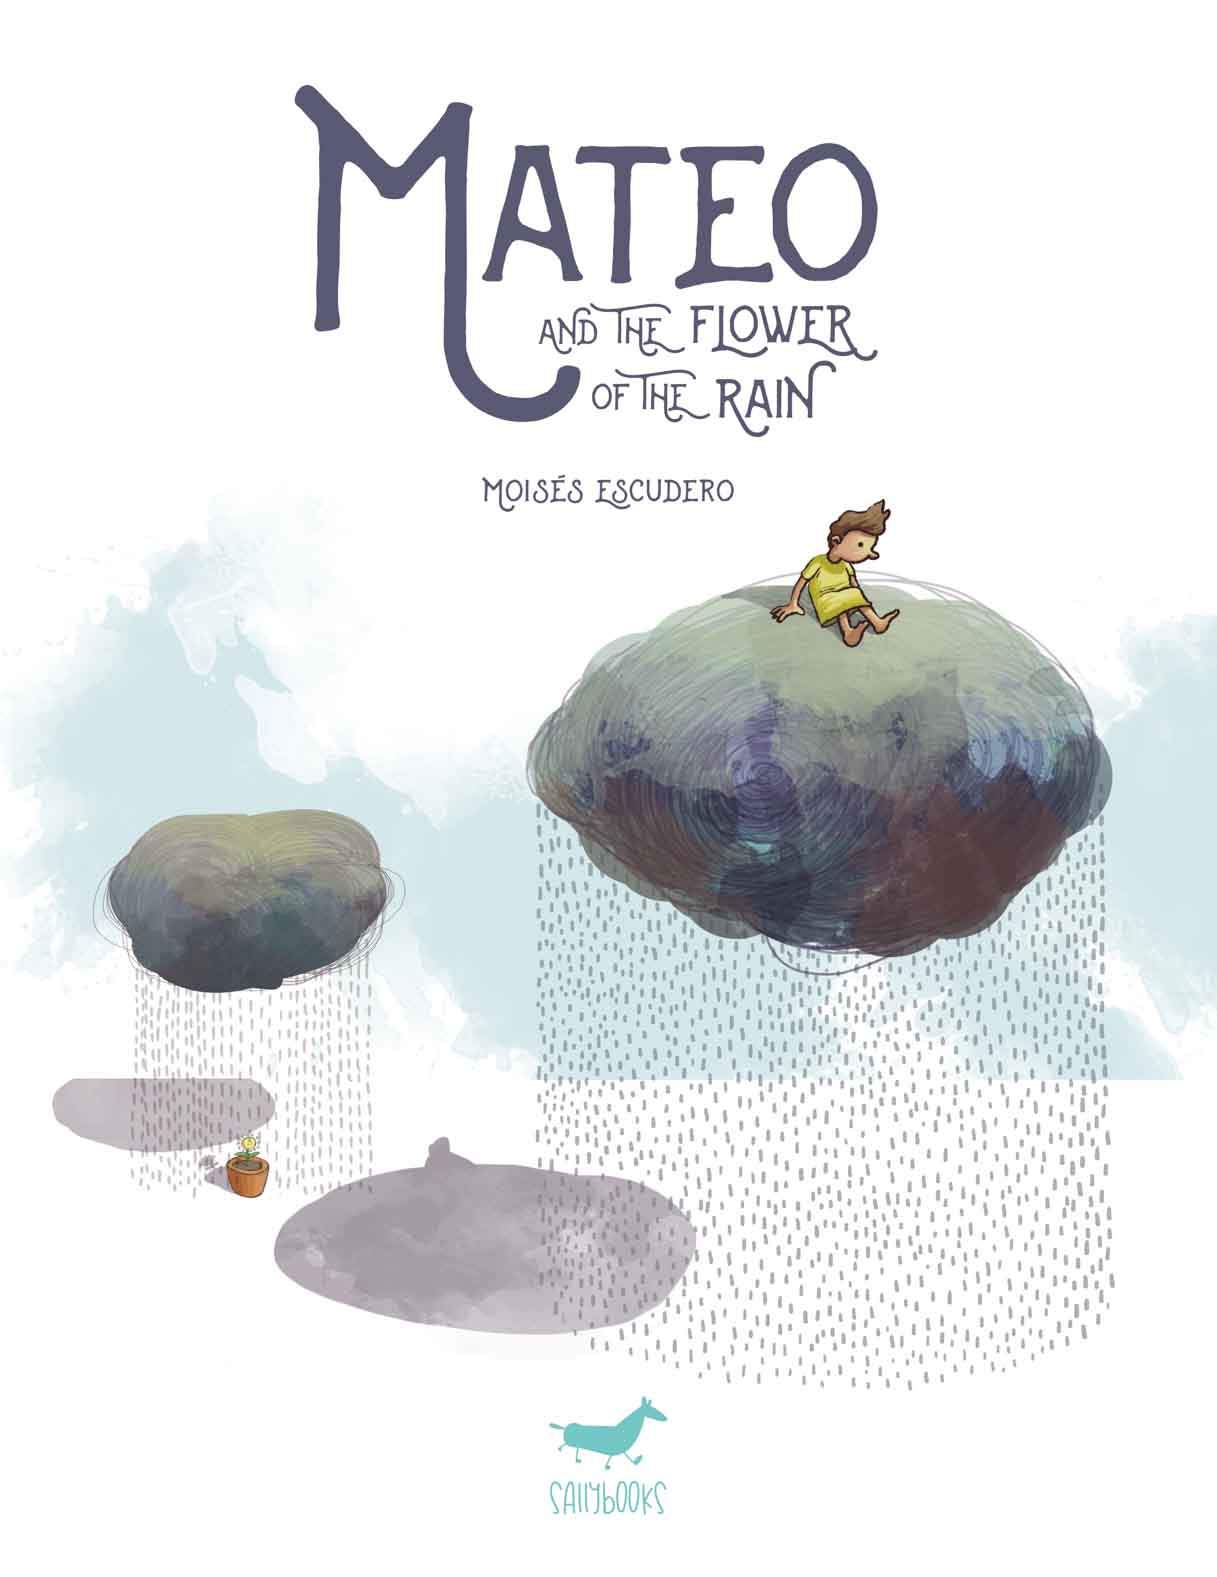 MATEO AND THE FLOWER OF THE RAIN